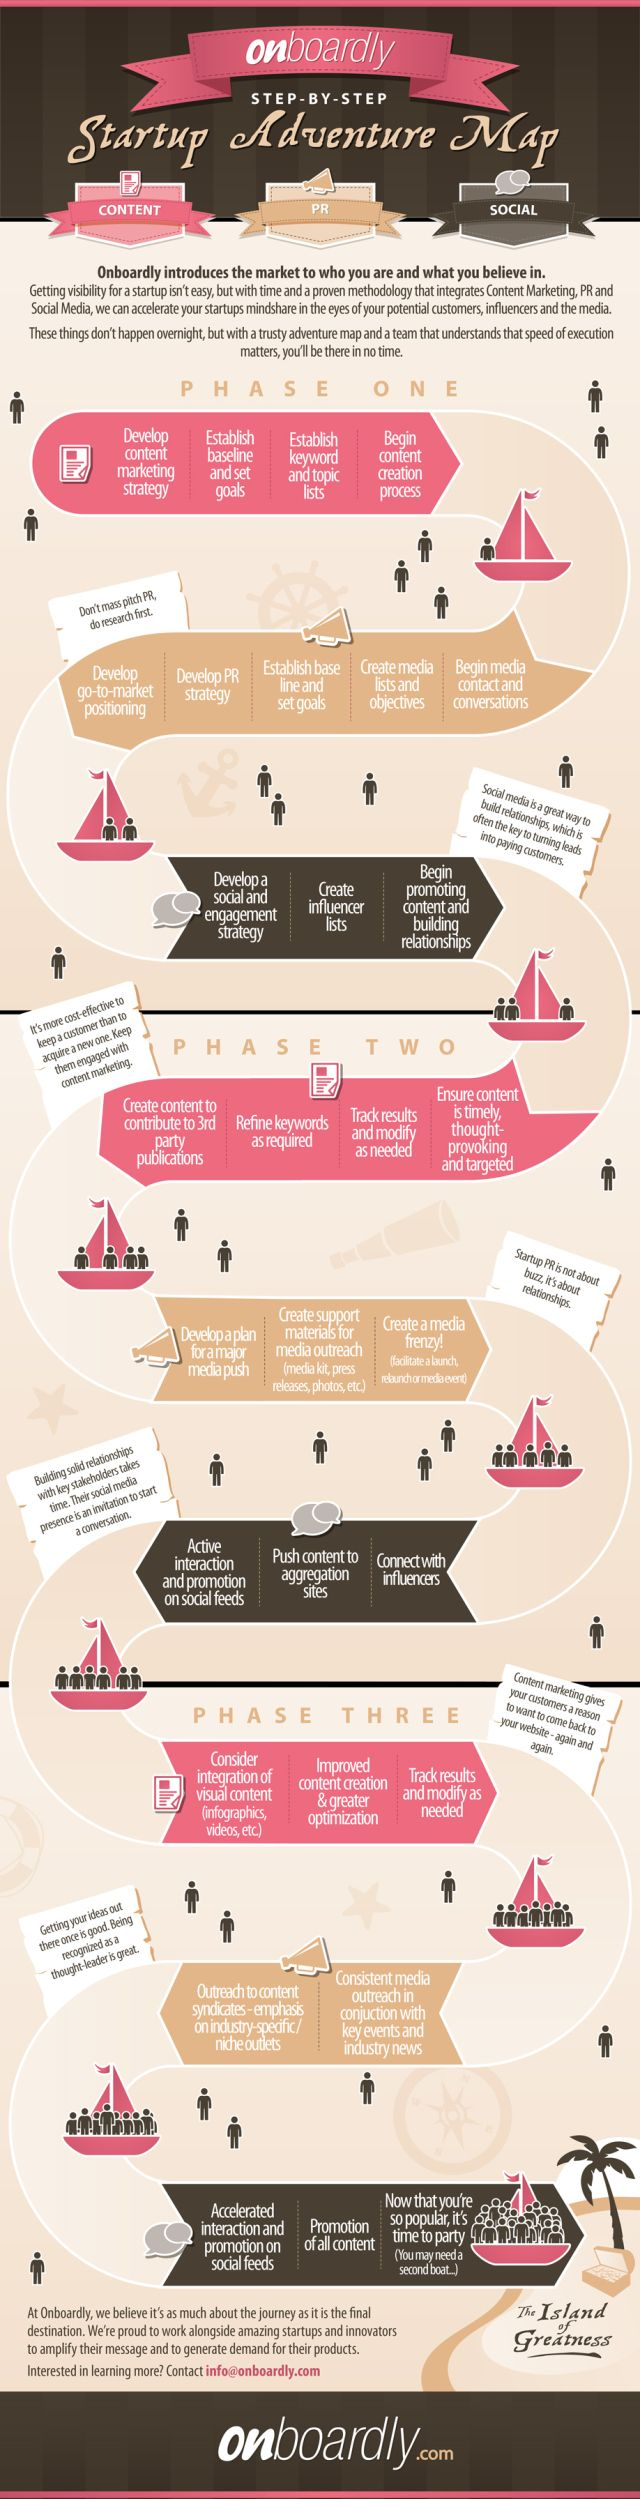 Marketing Roadmap How to Transform From Startup